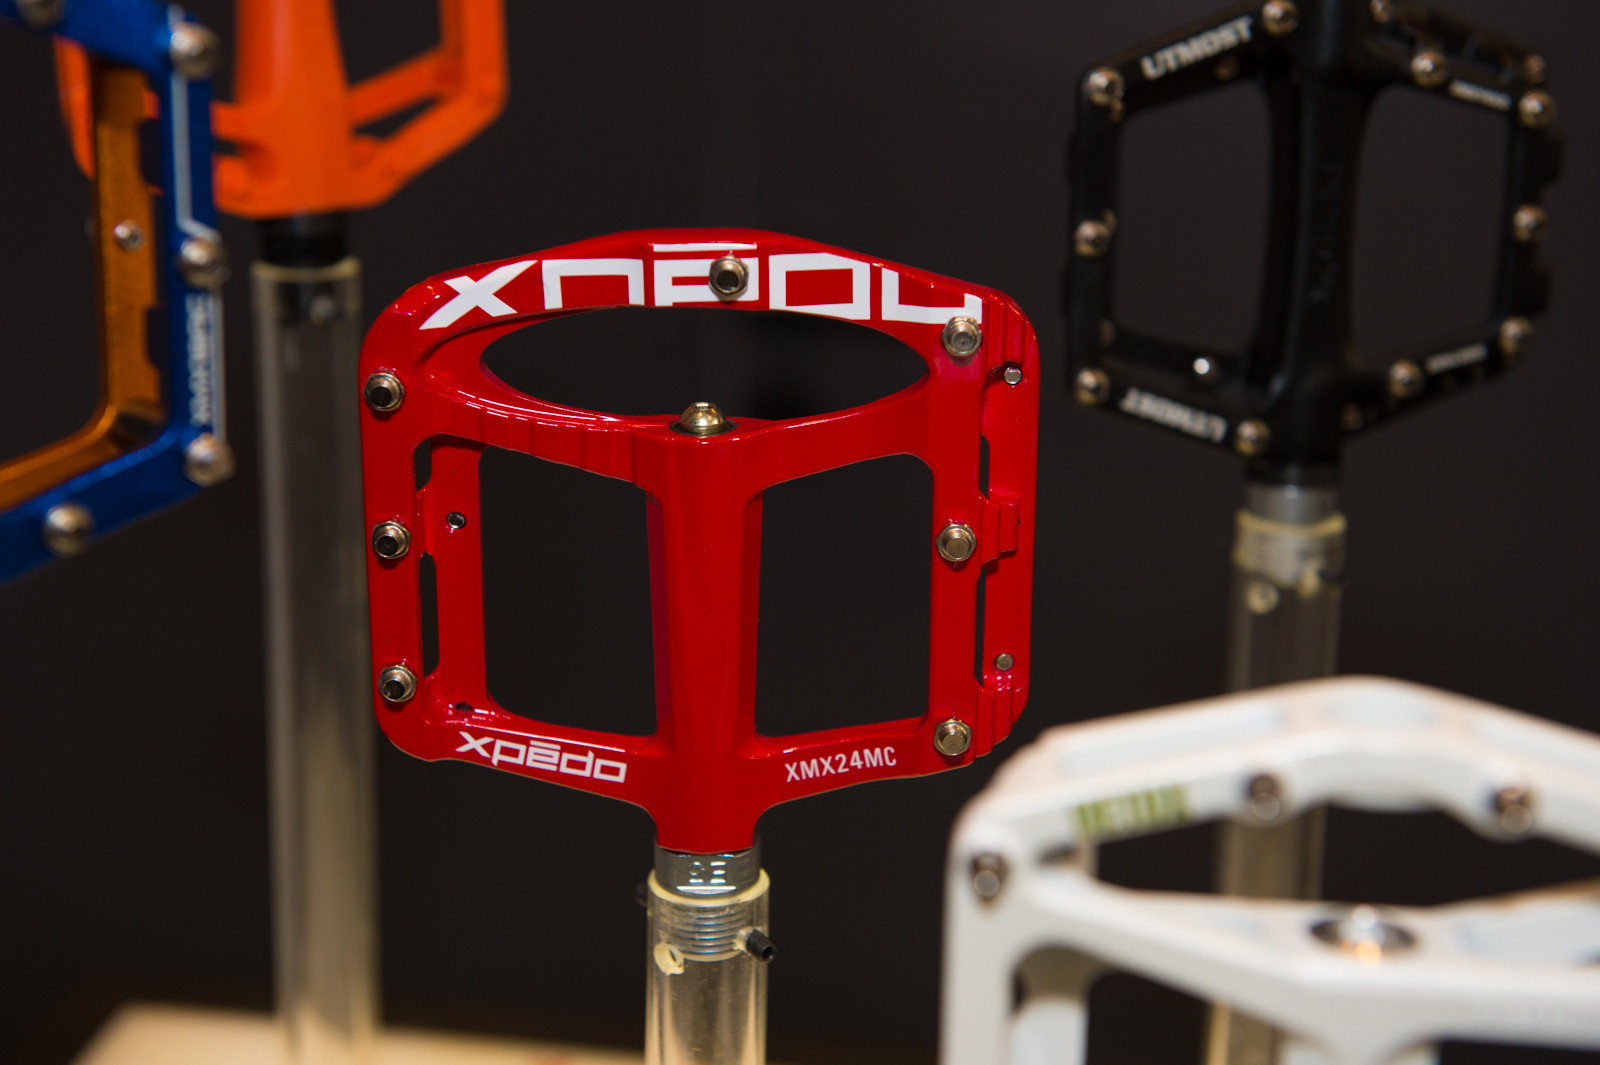 XPedo Spry Pedals - 2014 Mountain Bike Components at Eurobike 2013 - Mountain Biking Pictures - Vital MTB